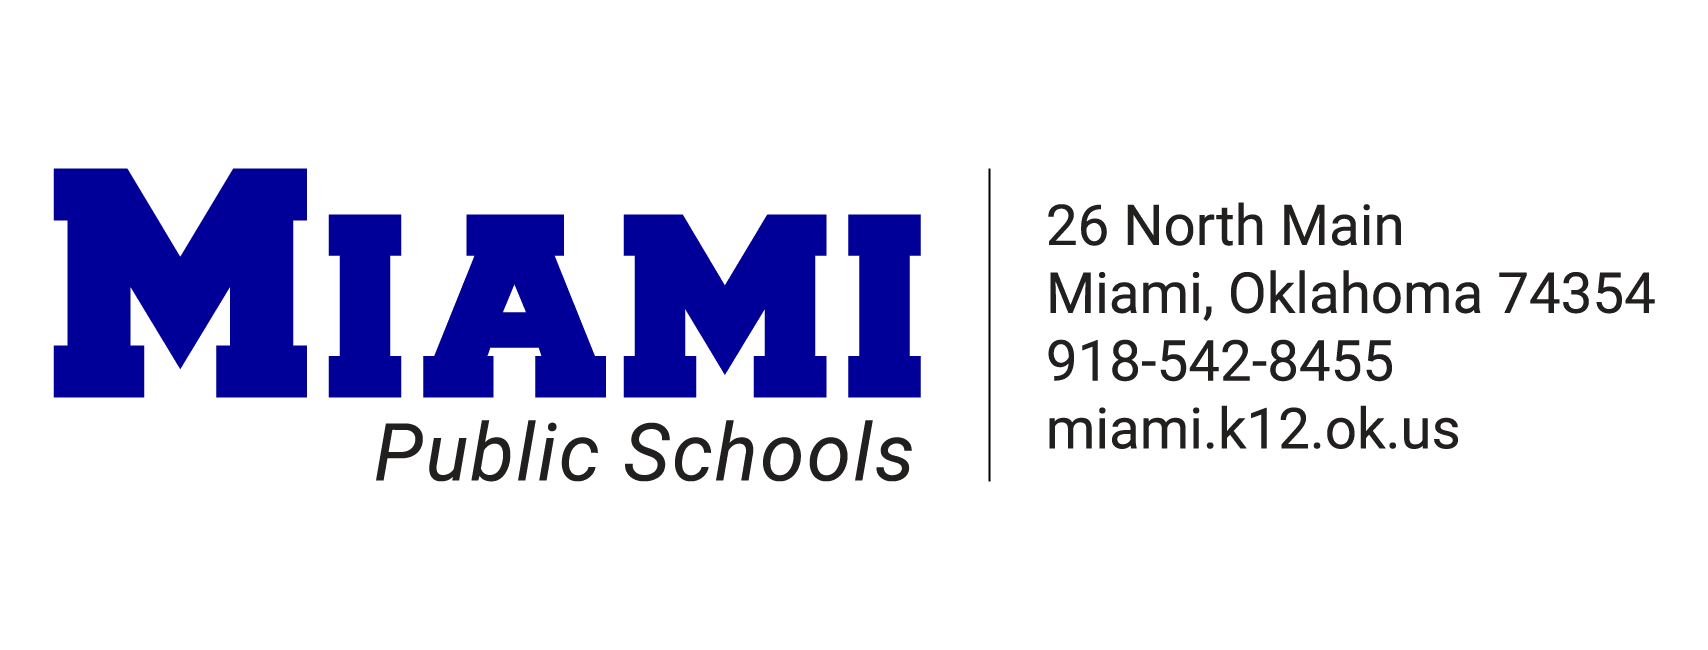 Miami Public Schools Logo and information